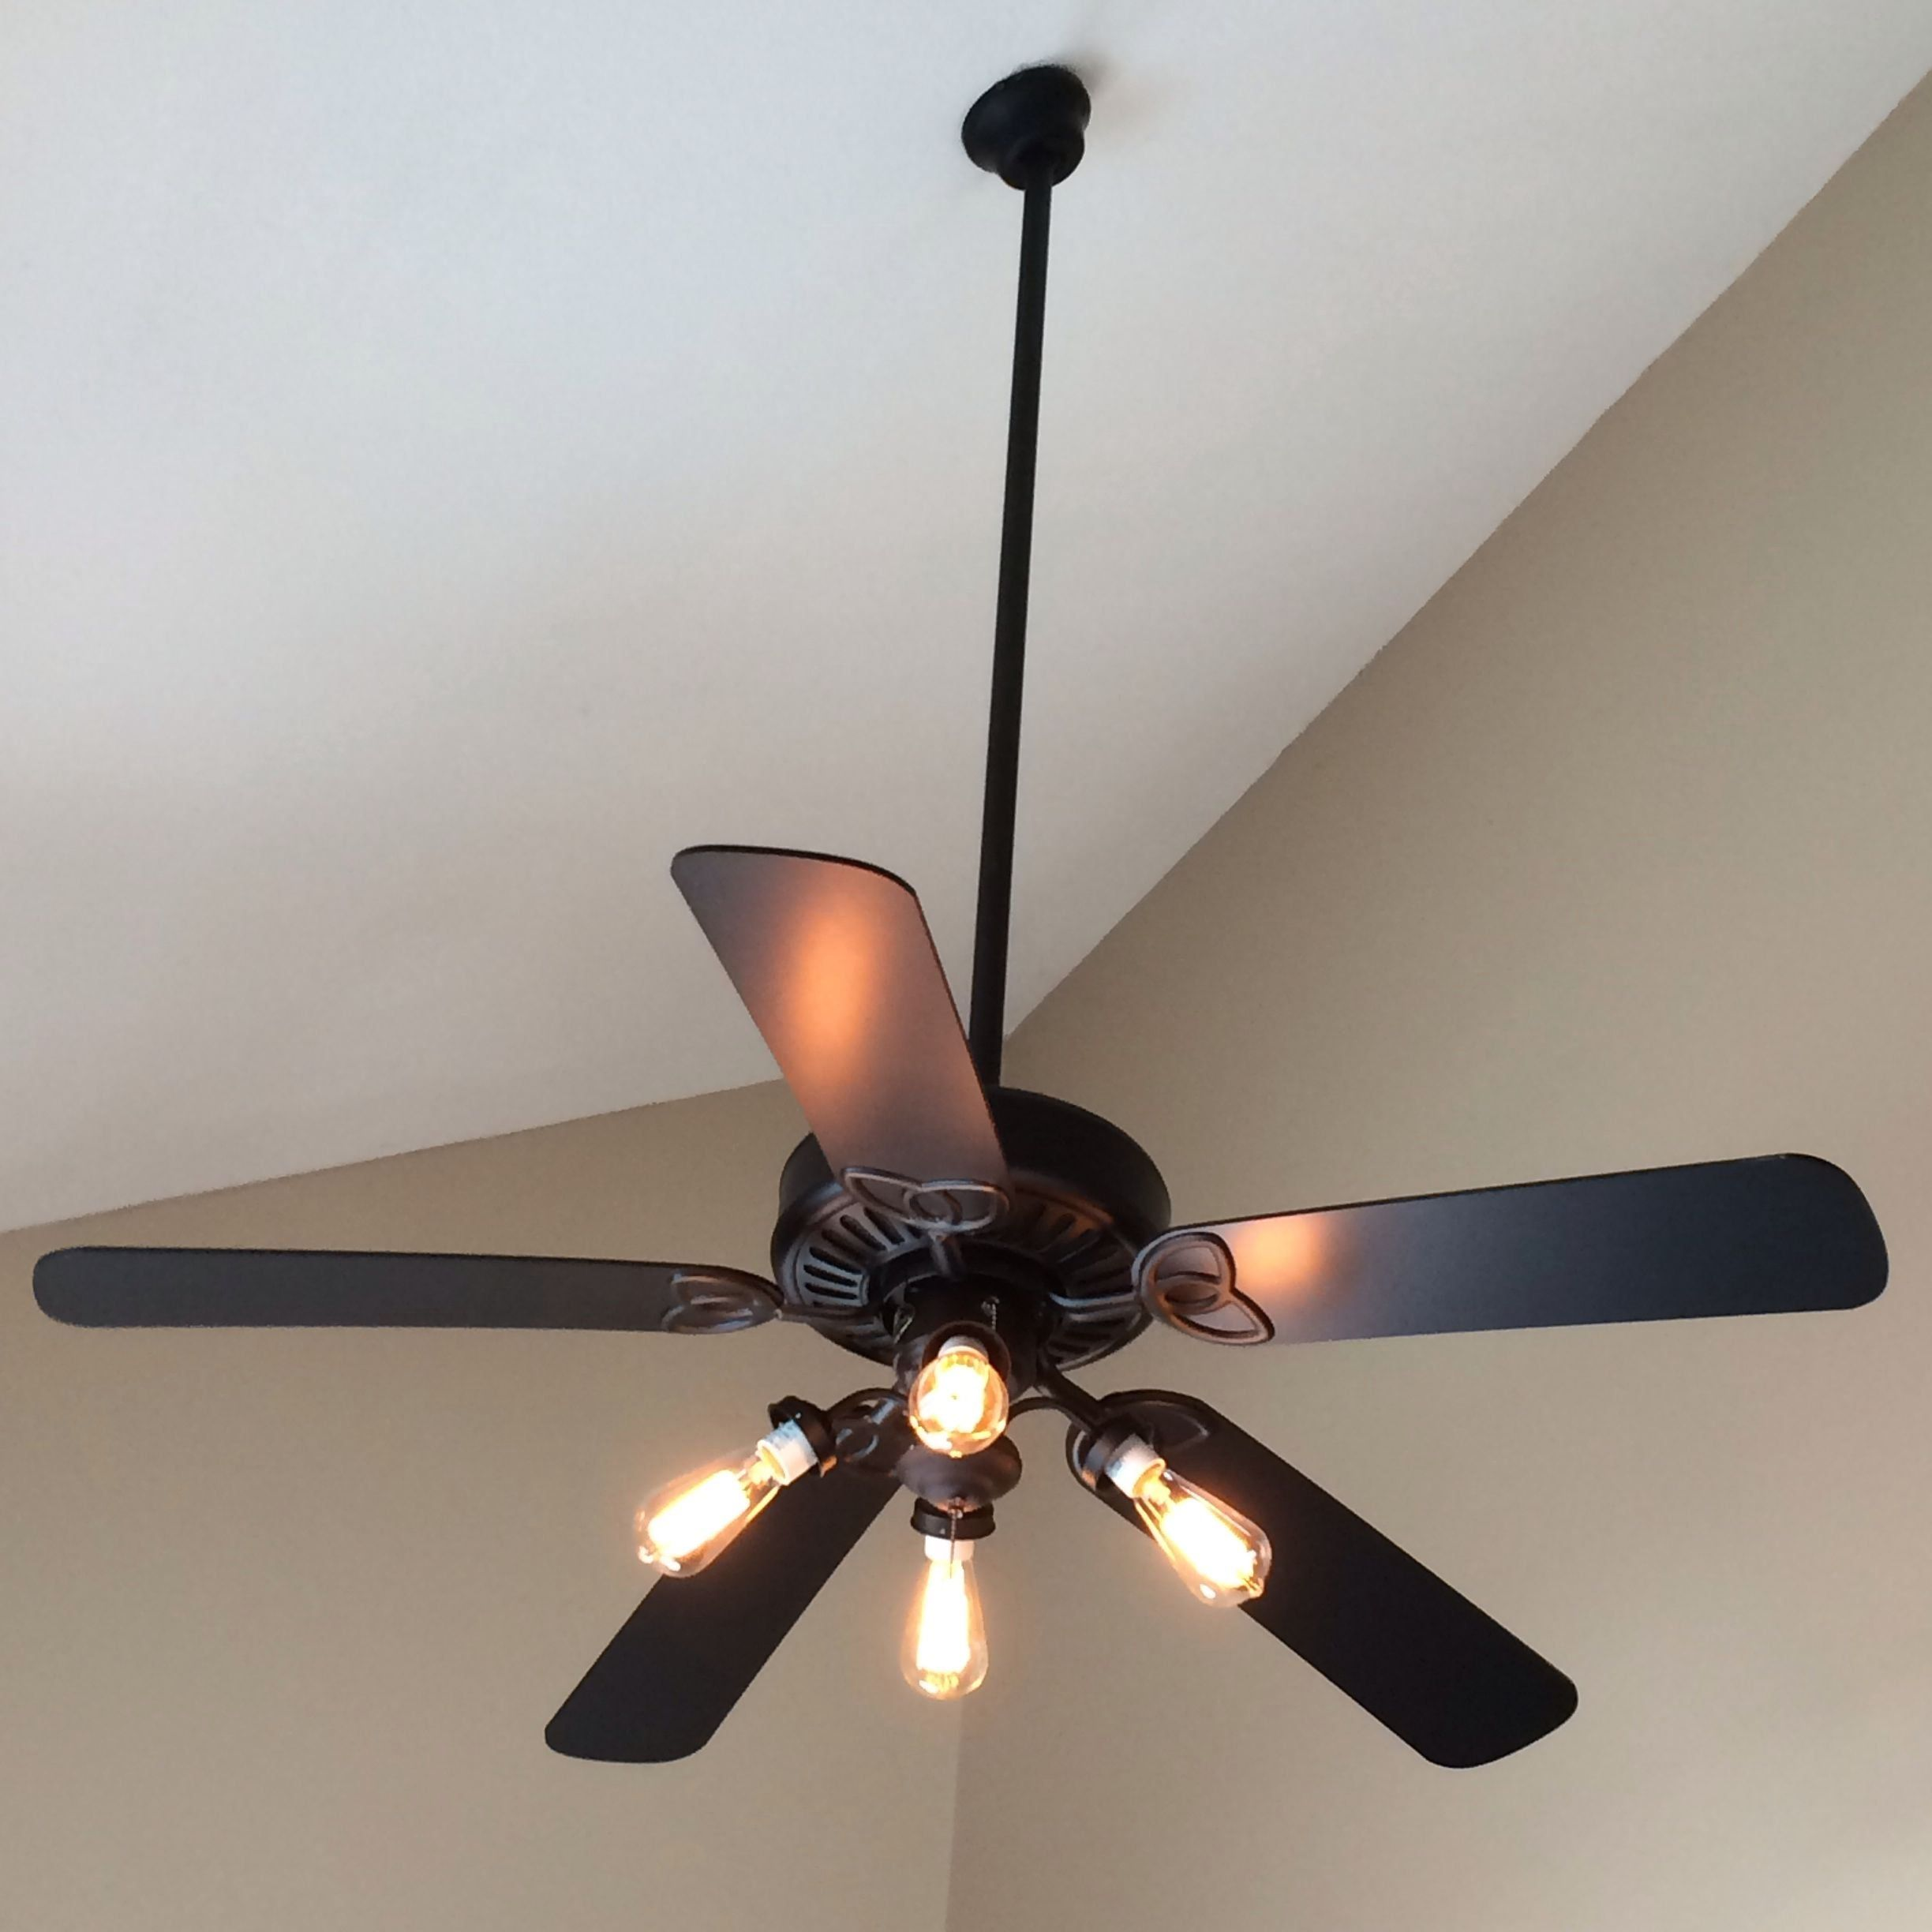 Quick Ceiling Fan Makeover Simply Remove The Shades And Screws And Use Edison B 1000 In 2020 Ceiling Fan Makeover Fan Light Ceiling Fan With Light